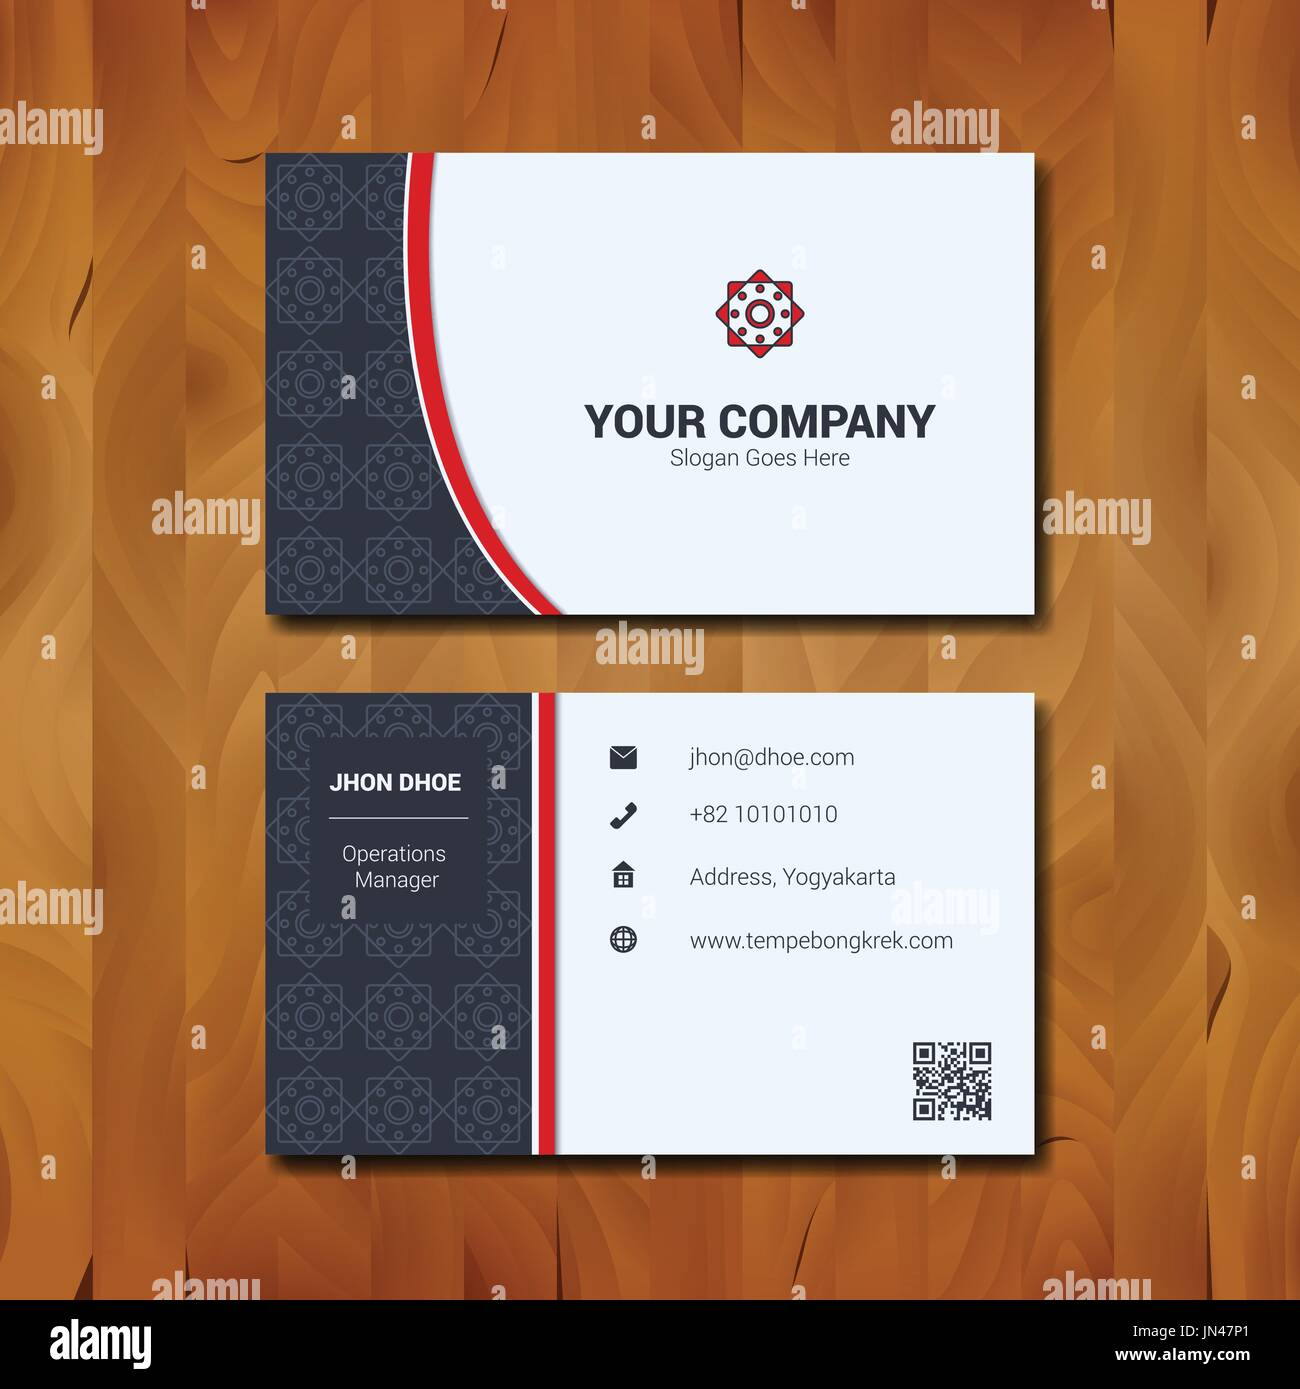 Simple business card template design with company logo on wood stock simple business card template design with company logo on wood background cheaphphosting Gallery